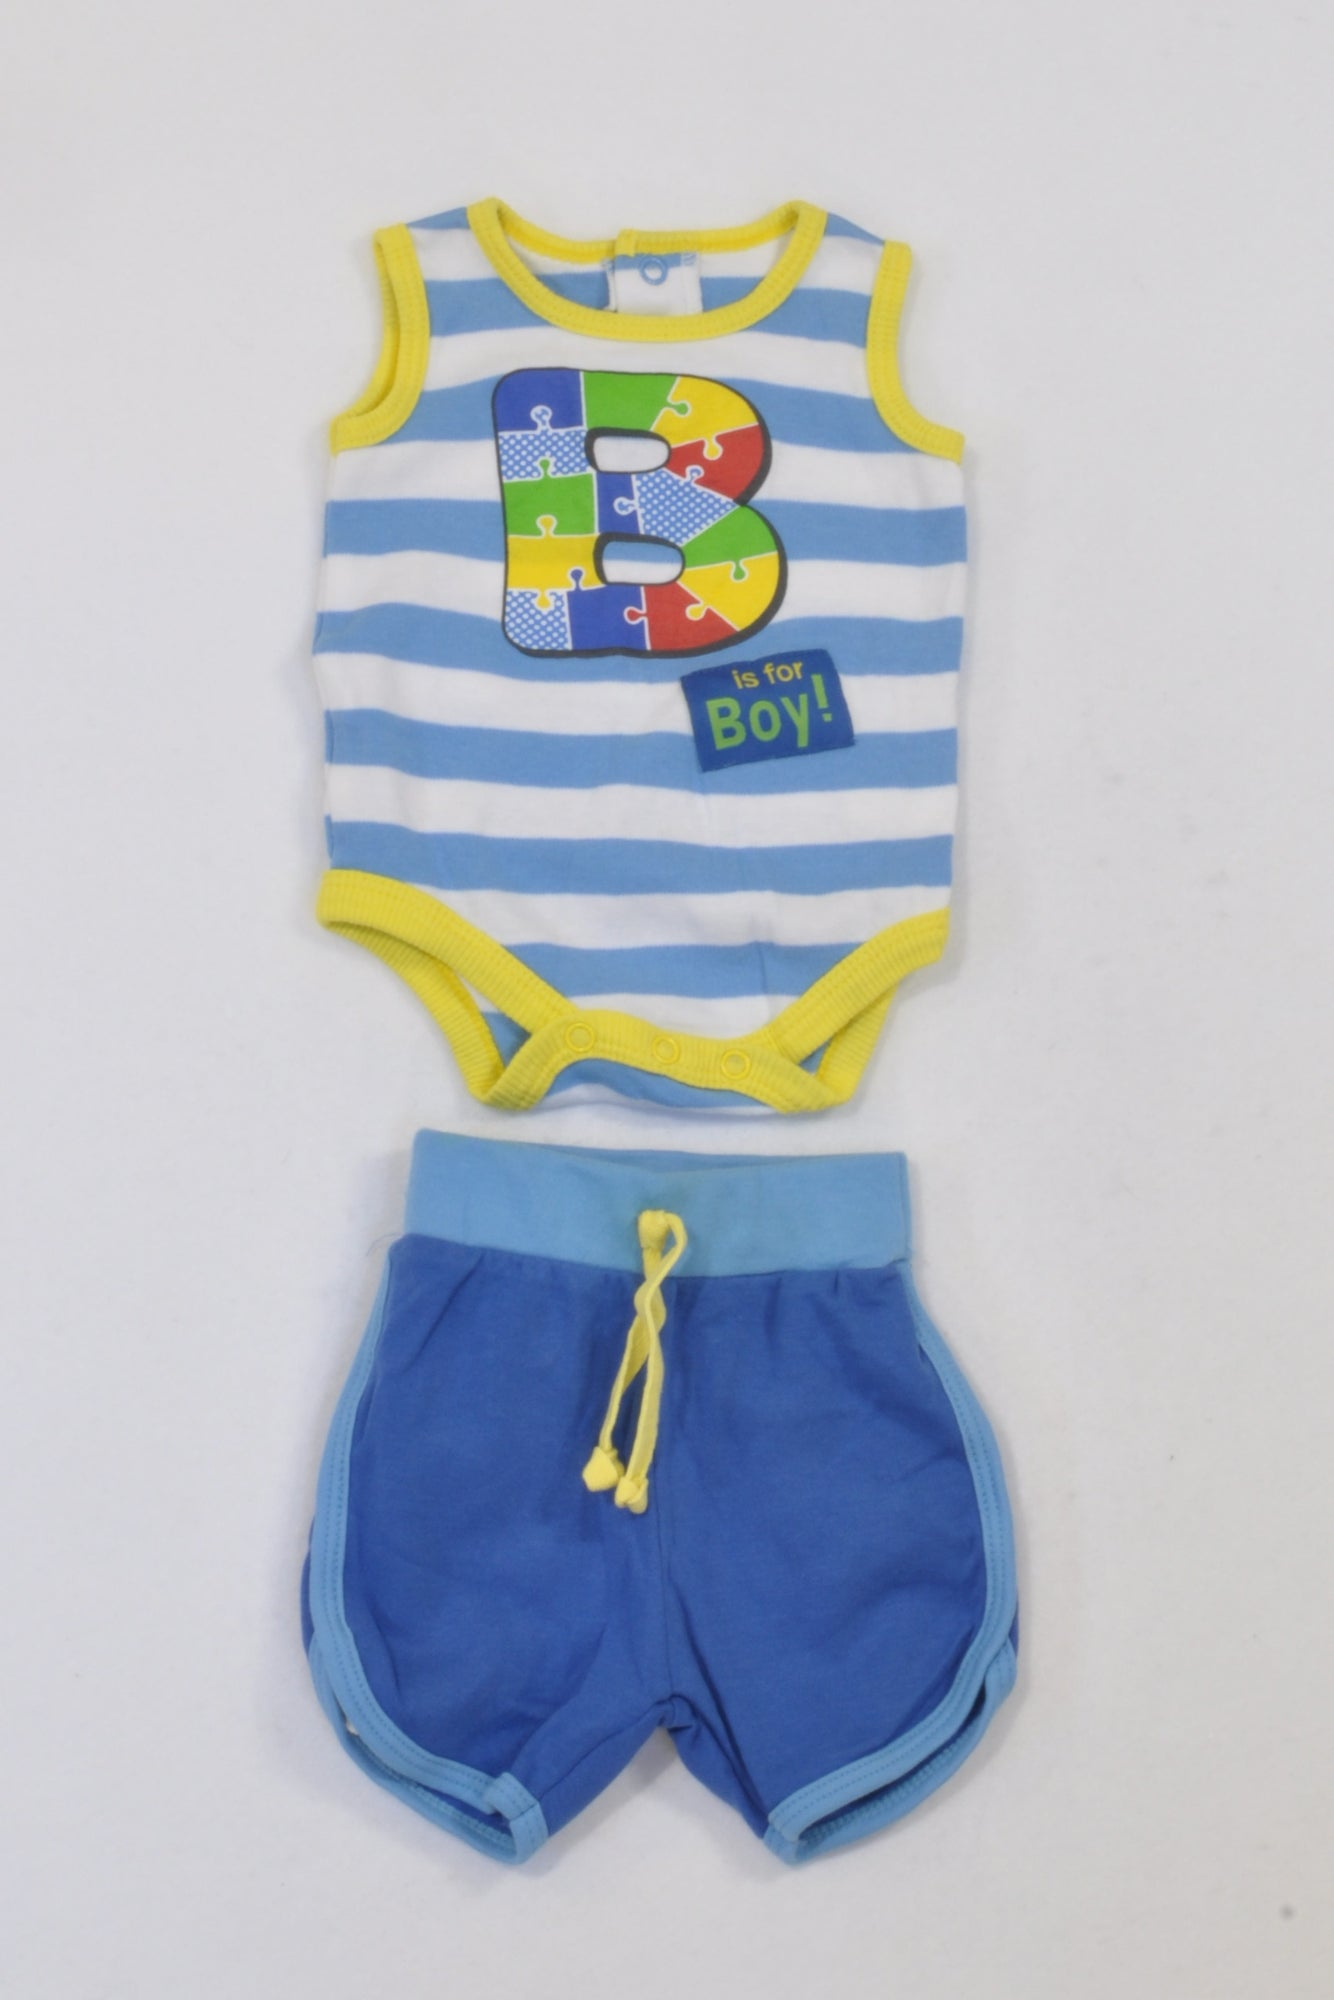 Woolies Blue & Yellow Trim Baby Grow & Shorts (2 of 2) Outfit Boys 0-3 months